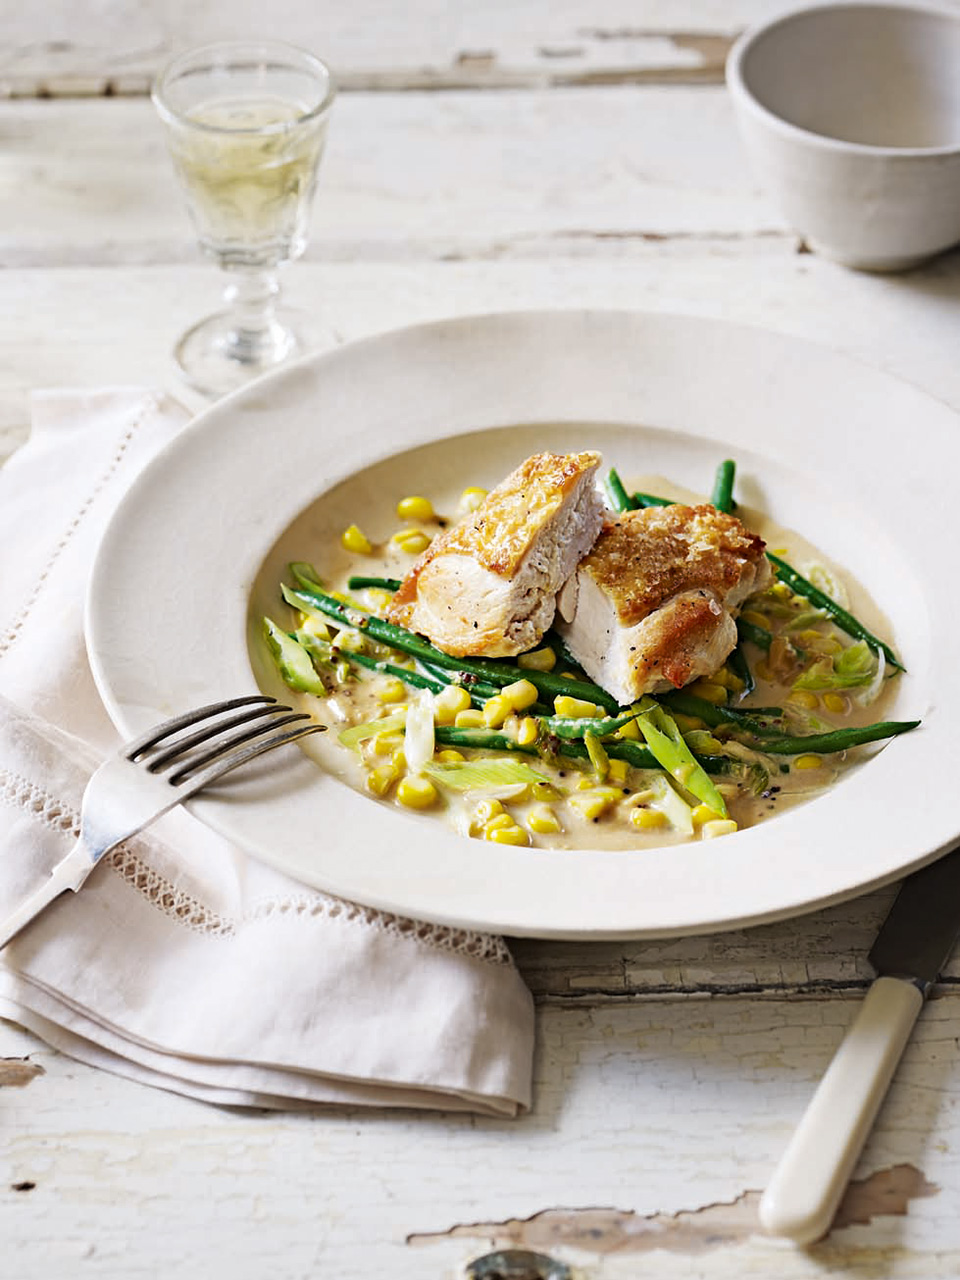 Roast Chicken Breasts with Sweetcorn Risotto and Caramelised Shallots Recipe pics